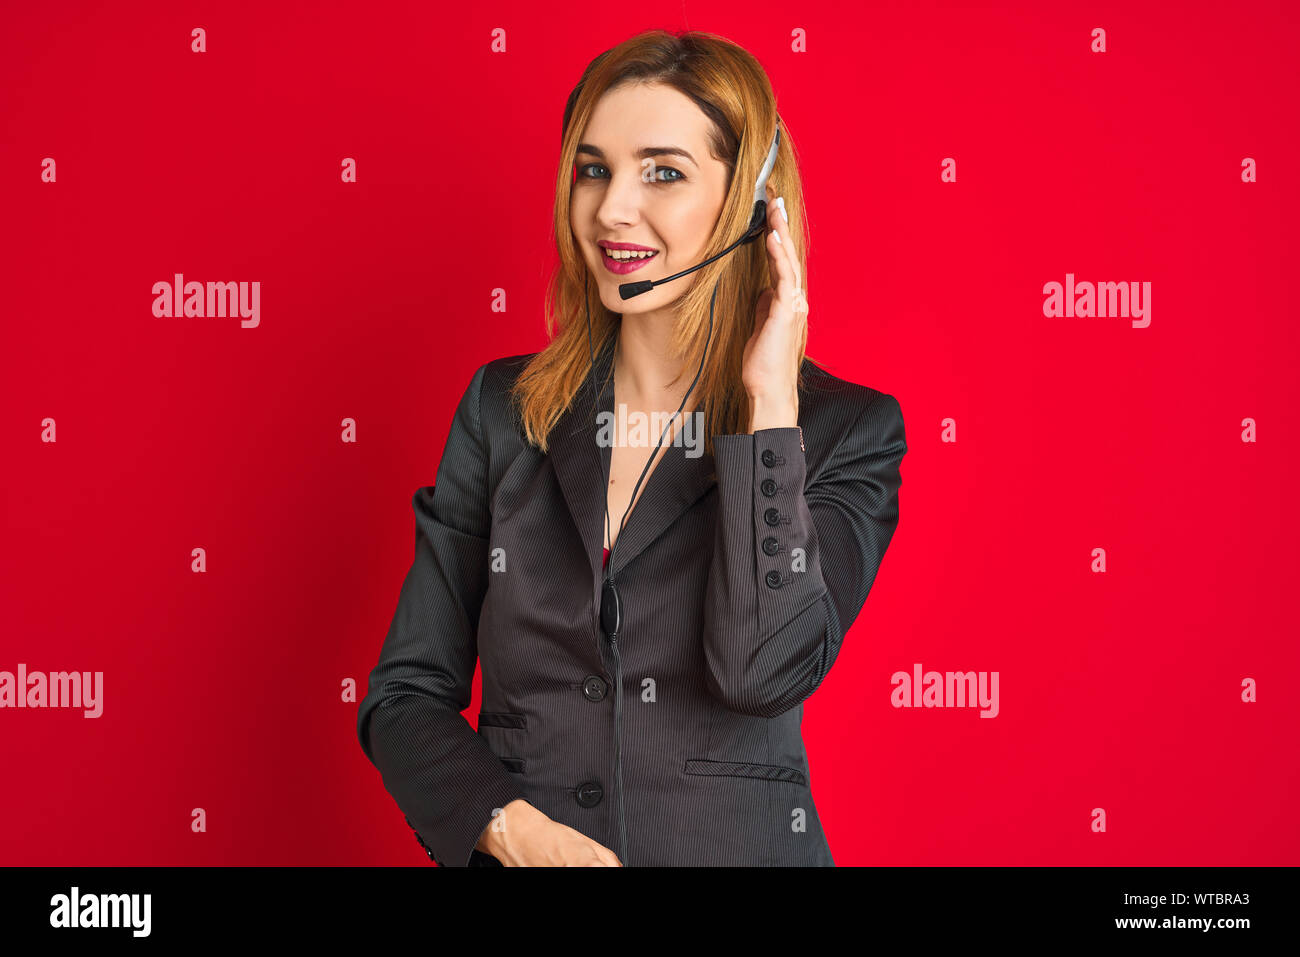 Young beautiful redhead call center agent woman wearing suit using headset Stock Photo